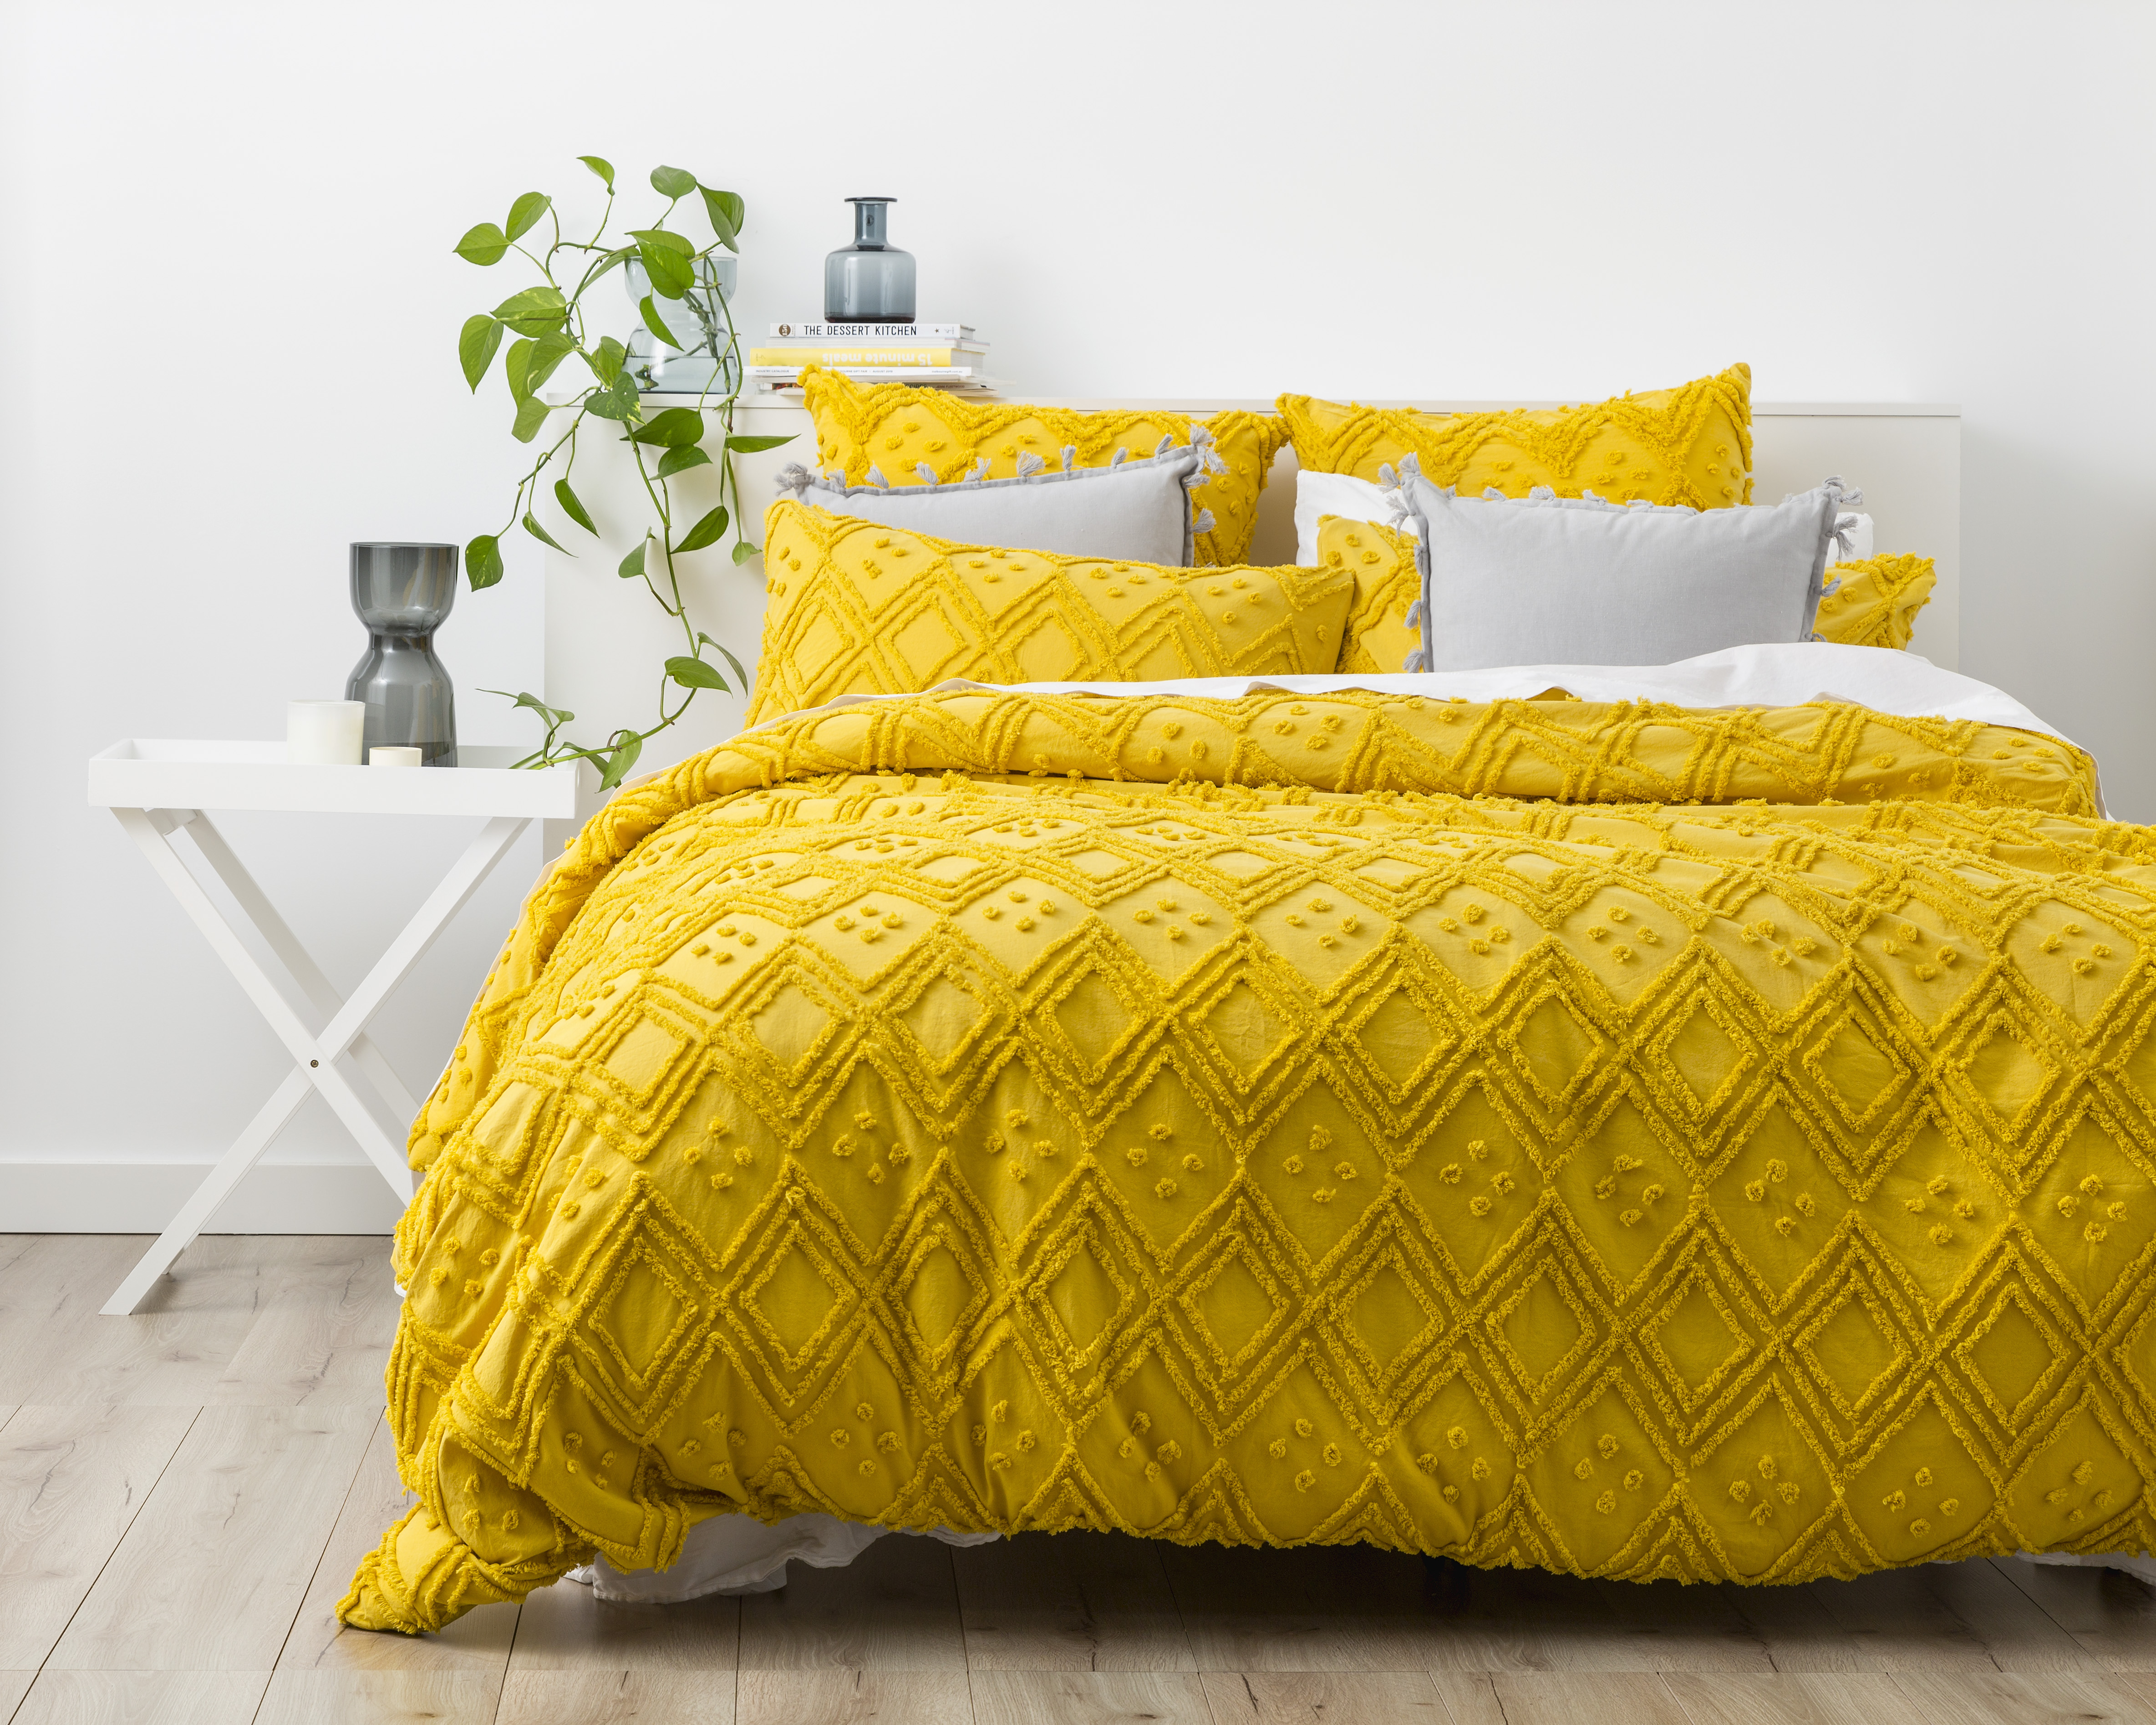 Park Avenue Medallion Tufted Quilt Cover Set | Misted Yellow